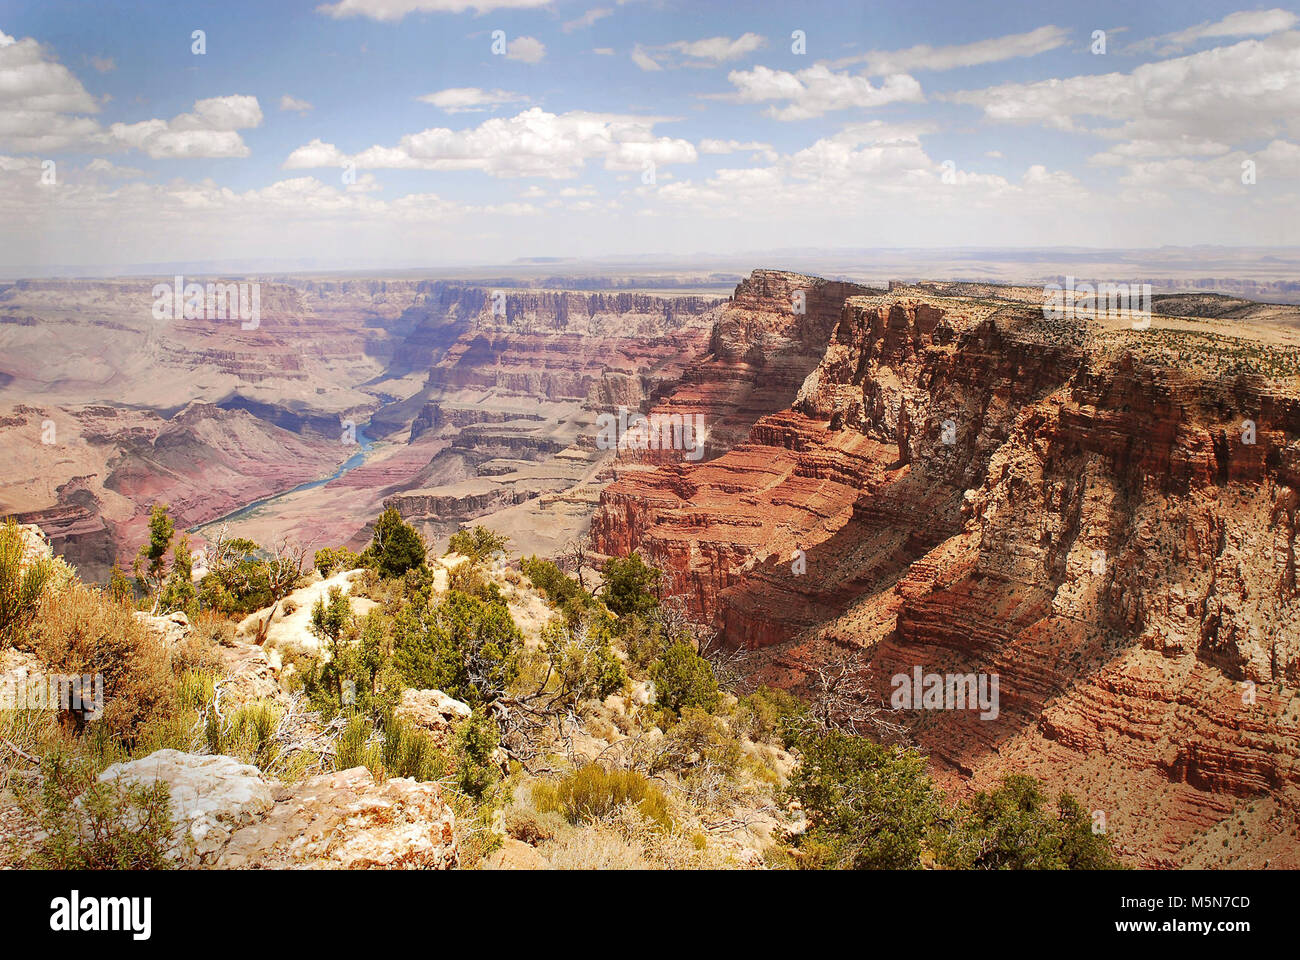 Grand Canyon Nat Park; Desert View Point Refurbishing . June 25, 2012. View from Desert View Point. Walkways and - Stock Image